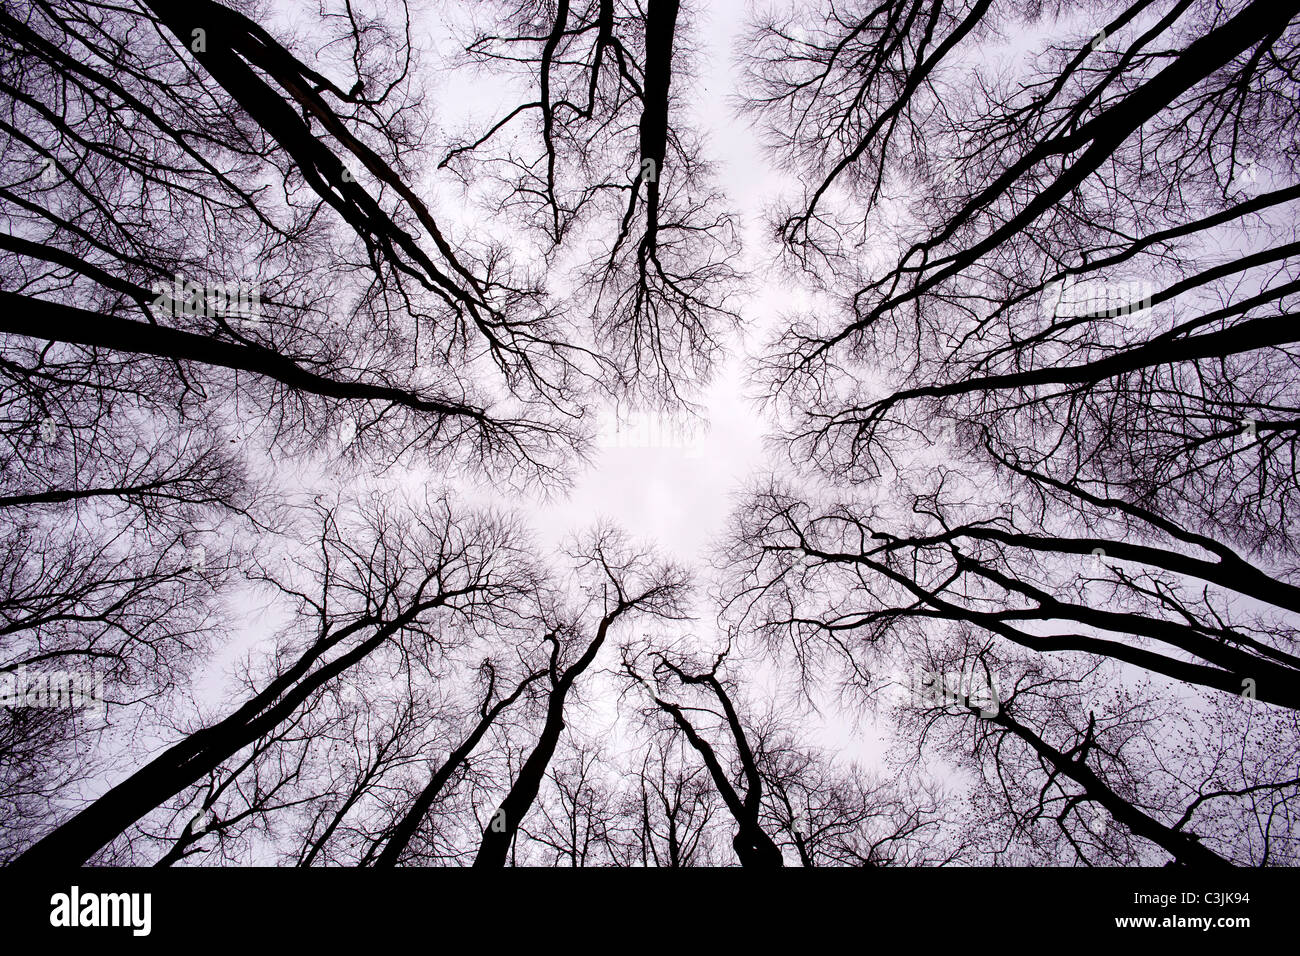 Silhouetted circular enclosed view upwards of winter bare trees in English woodland giving a spooky enchanted feel - Stock Image